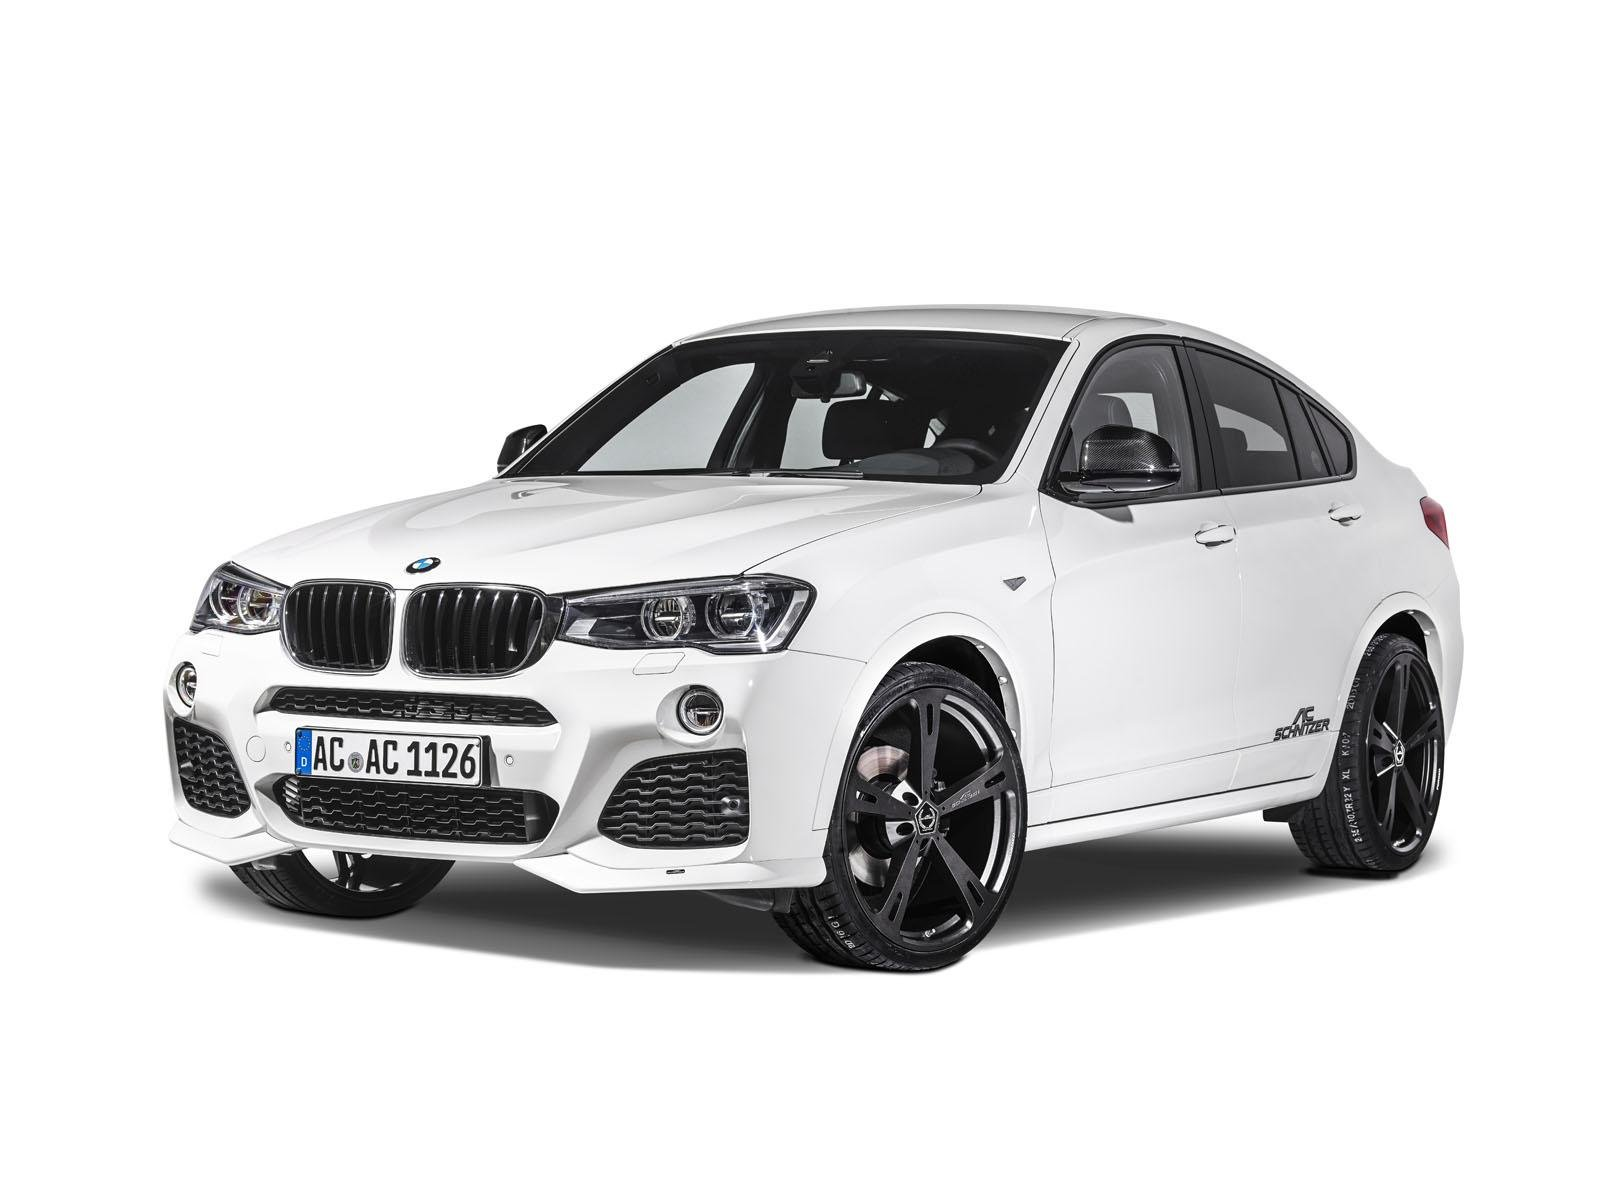 2014 ac schnitzer bmw x4 dark cars wallpapers. Black Bedroom Furniture Sets. Home Design Ideas